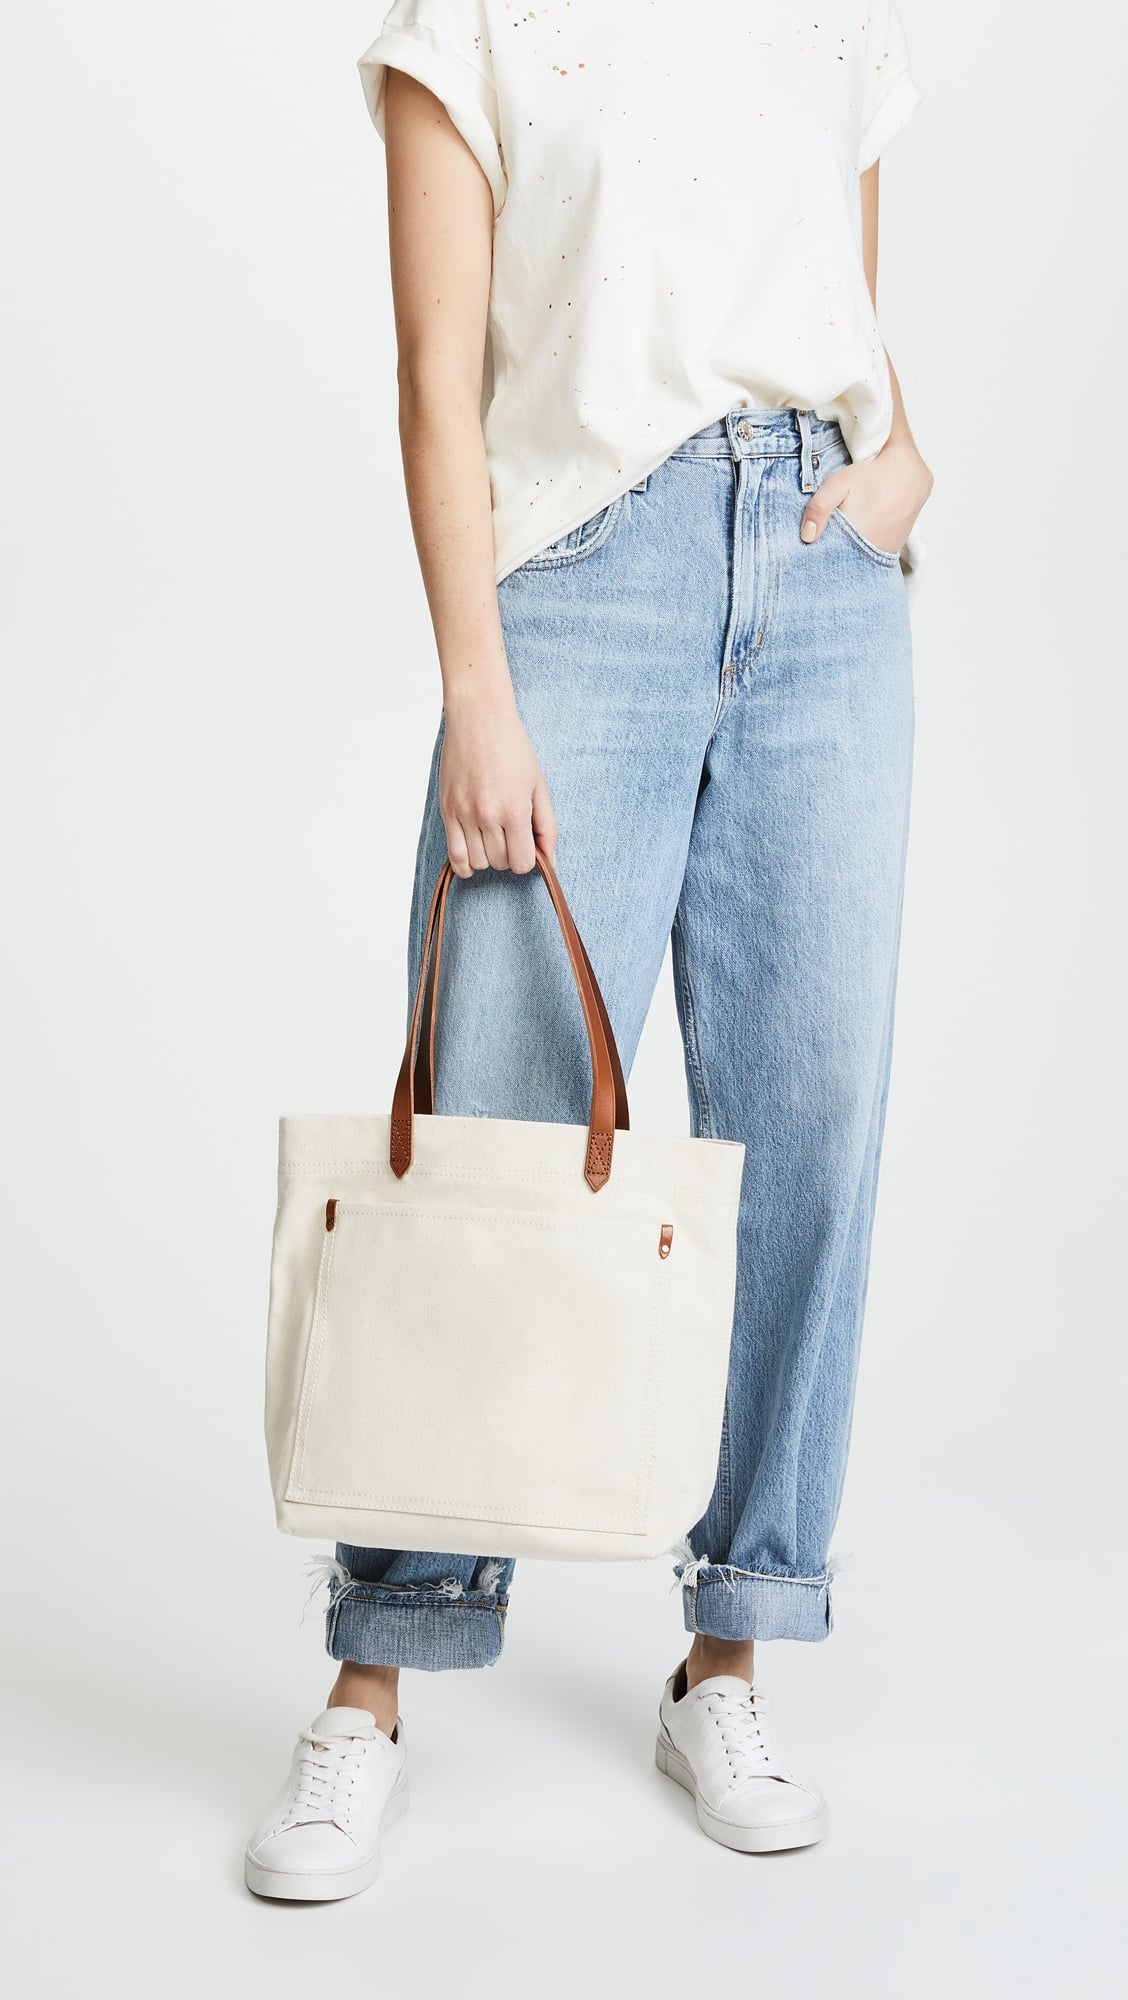 Madewell The Canvas Medium Transport Tote If You Re Grocery Shopping In 2020 Bring A Reusable Bag Popsugar Smart Living Photo 5